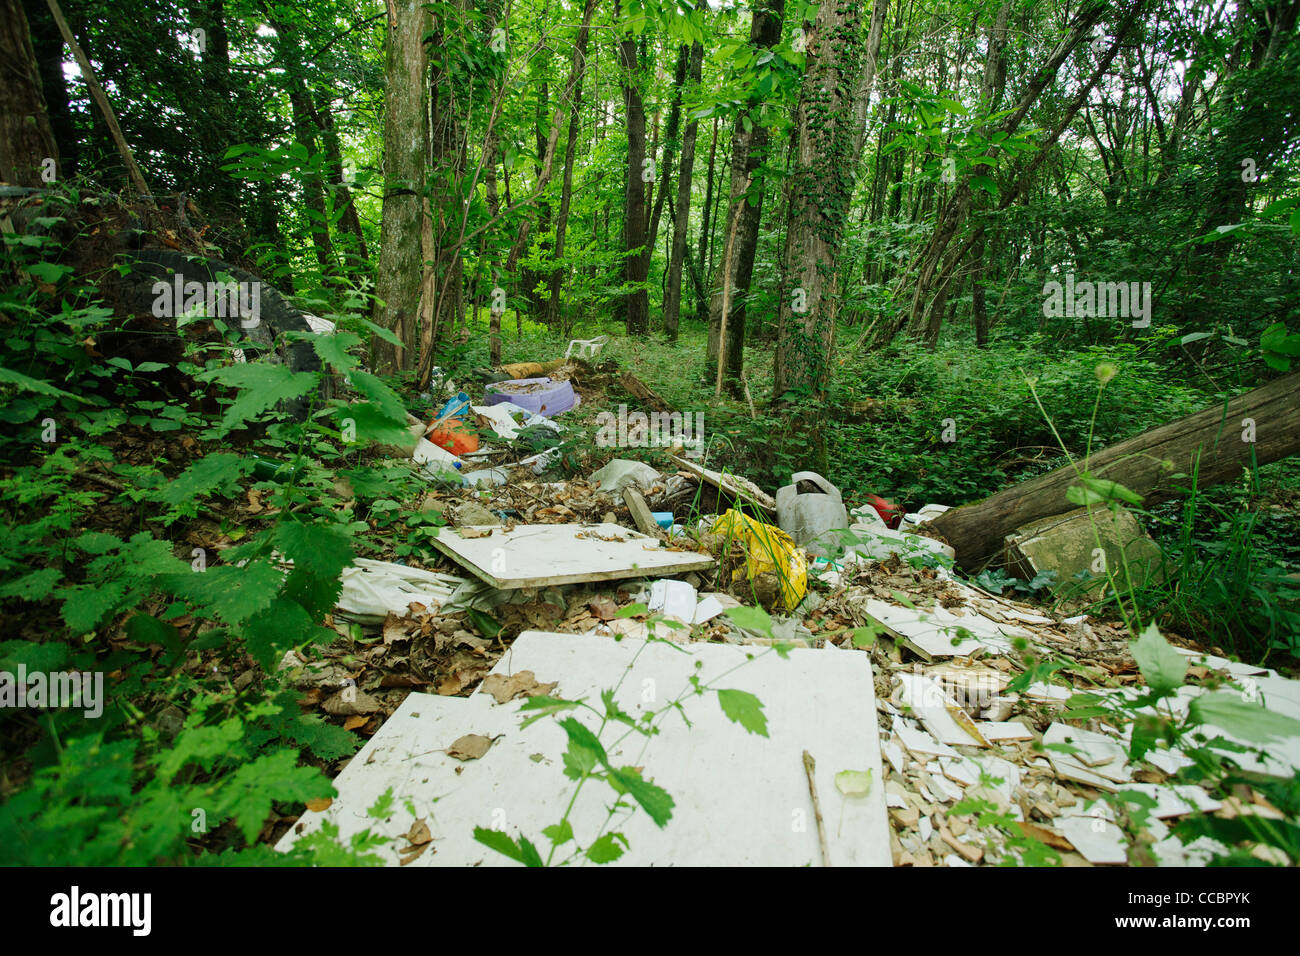 Garbage dumped in woods Stock Photo